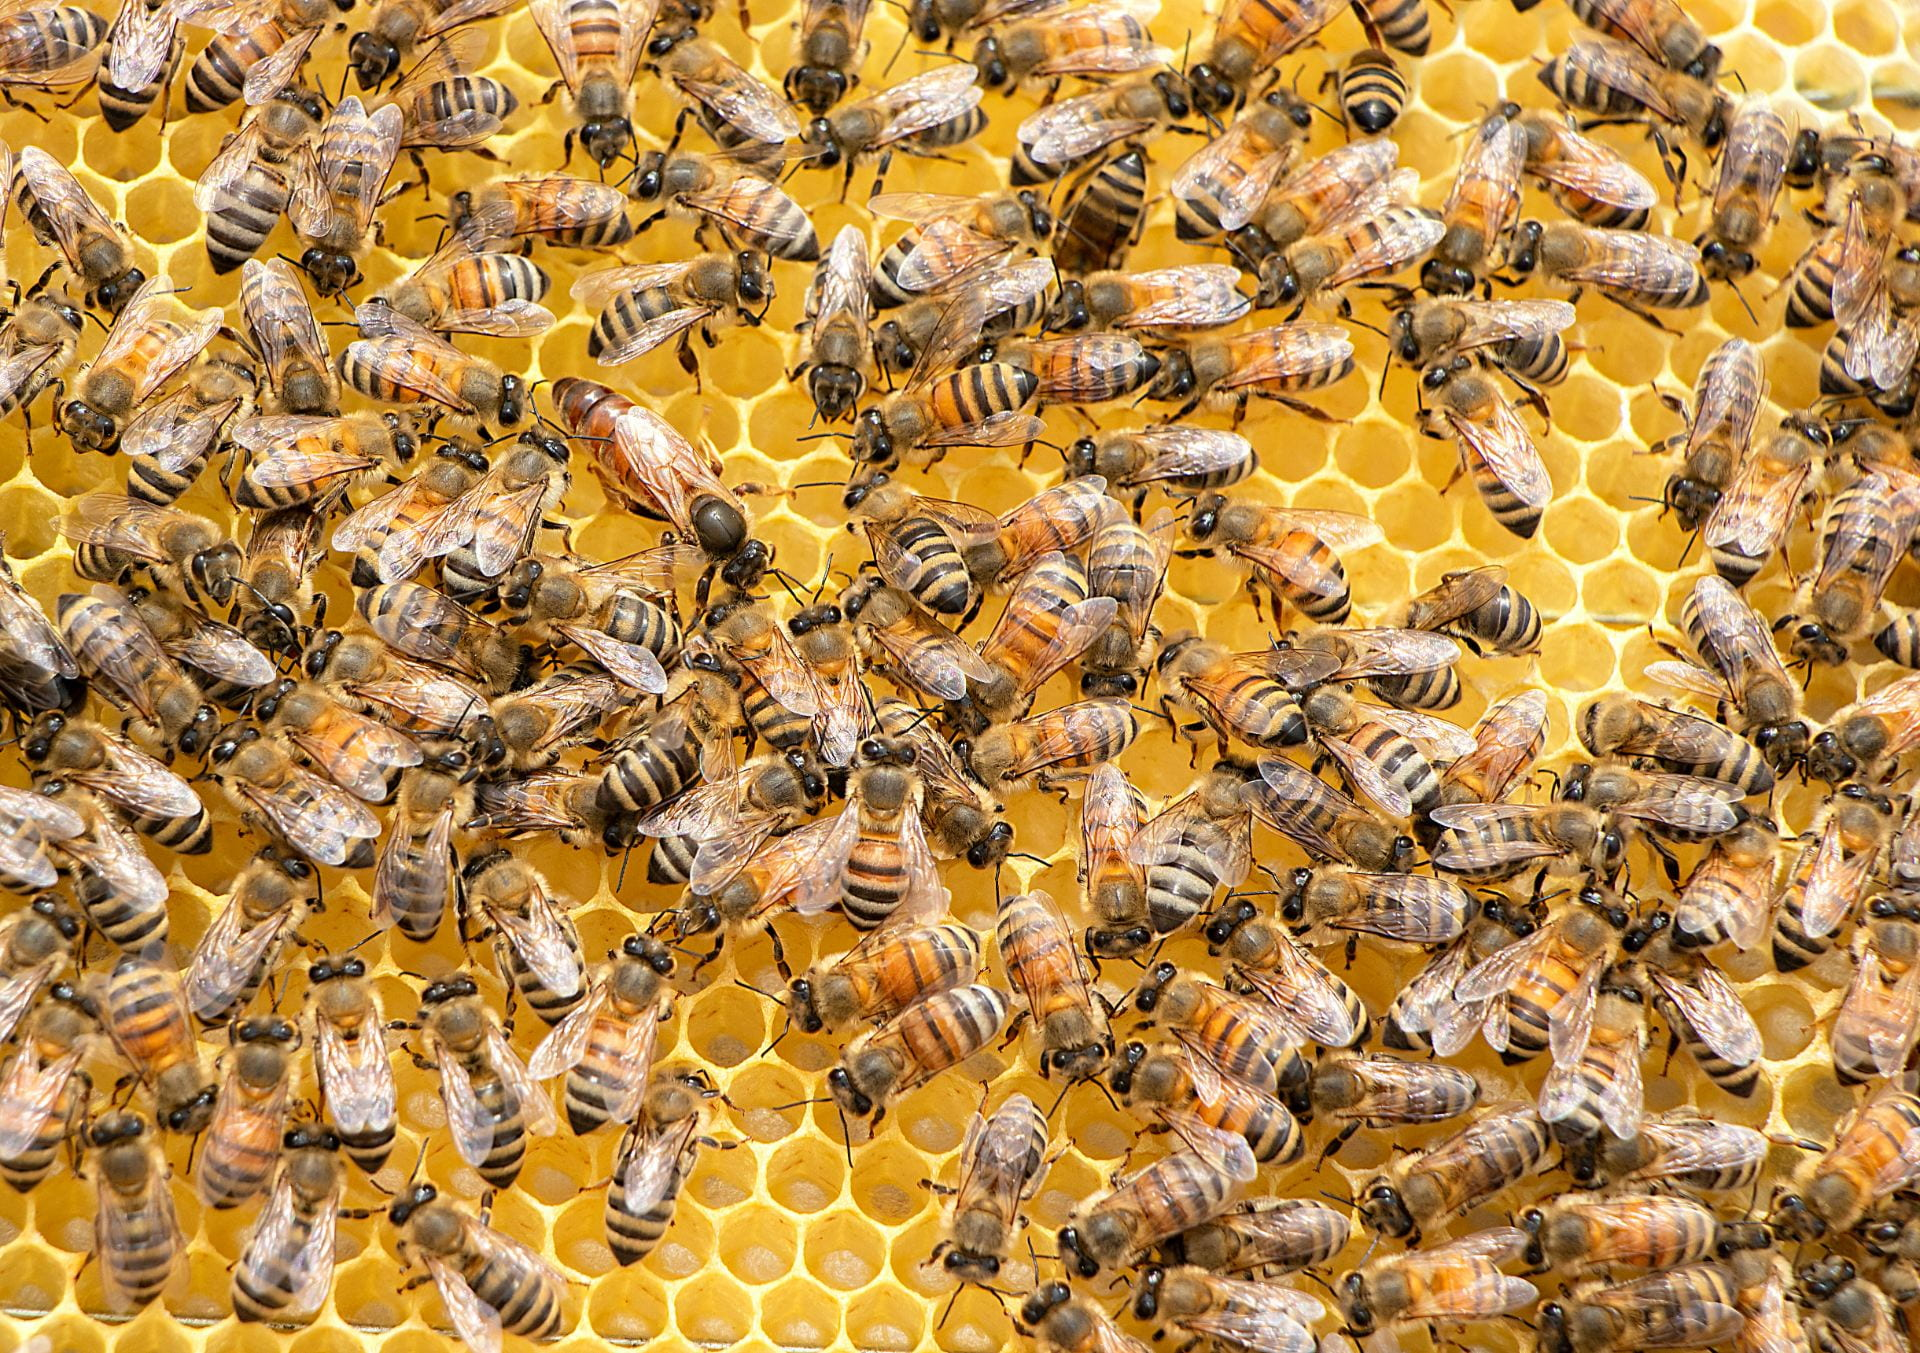 a photograph of a swarm of bees sitting on golden honeycomb. There are many bustling workers surrounding a significantly larger queen bee.